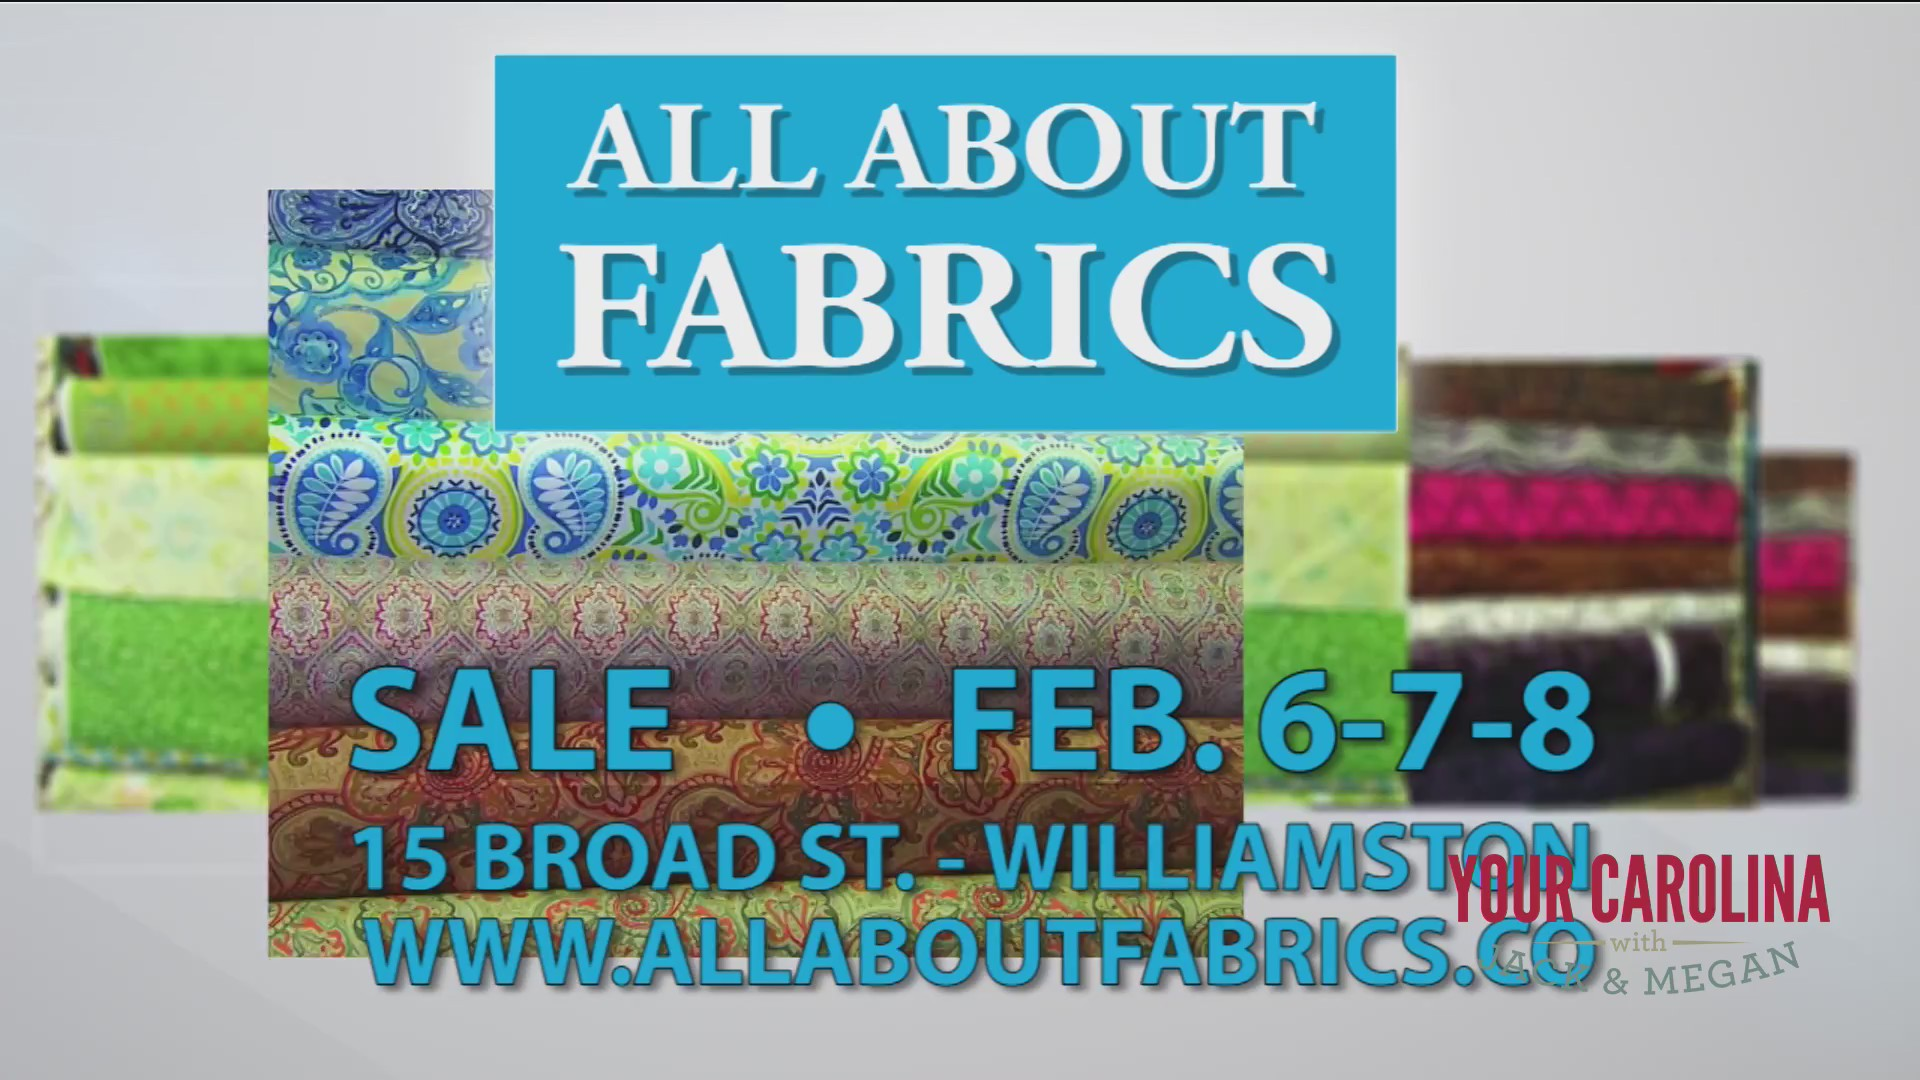 All About Fabrics Open 3 Days Only